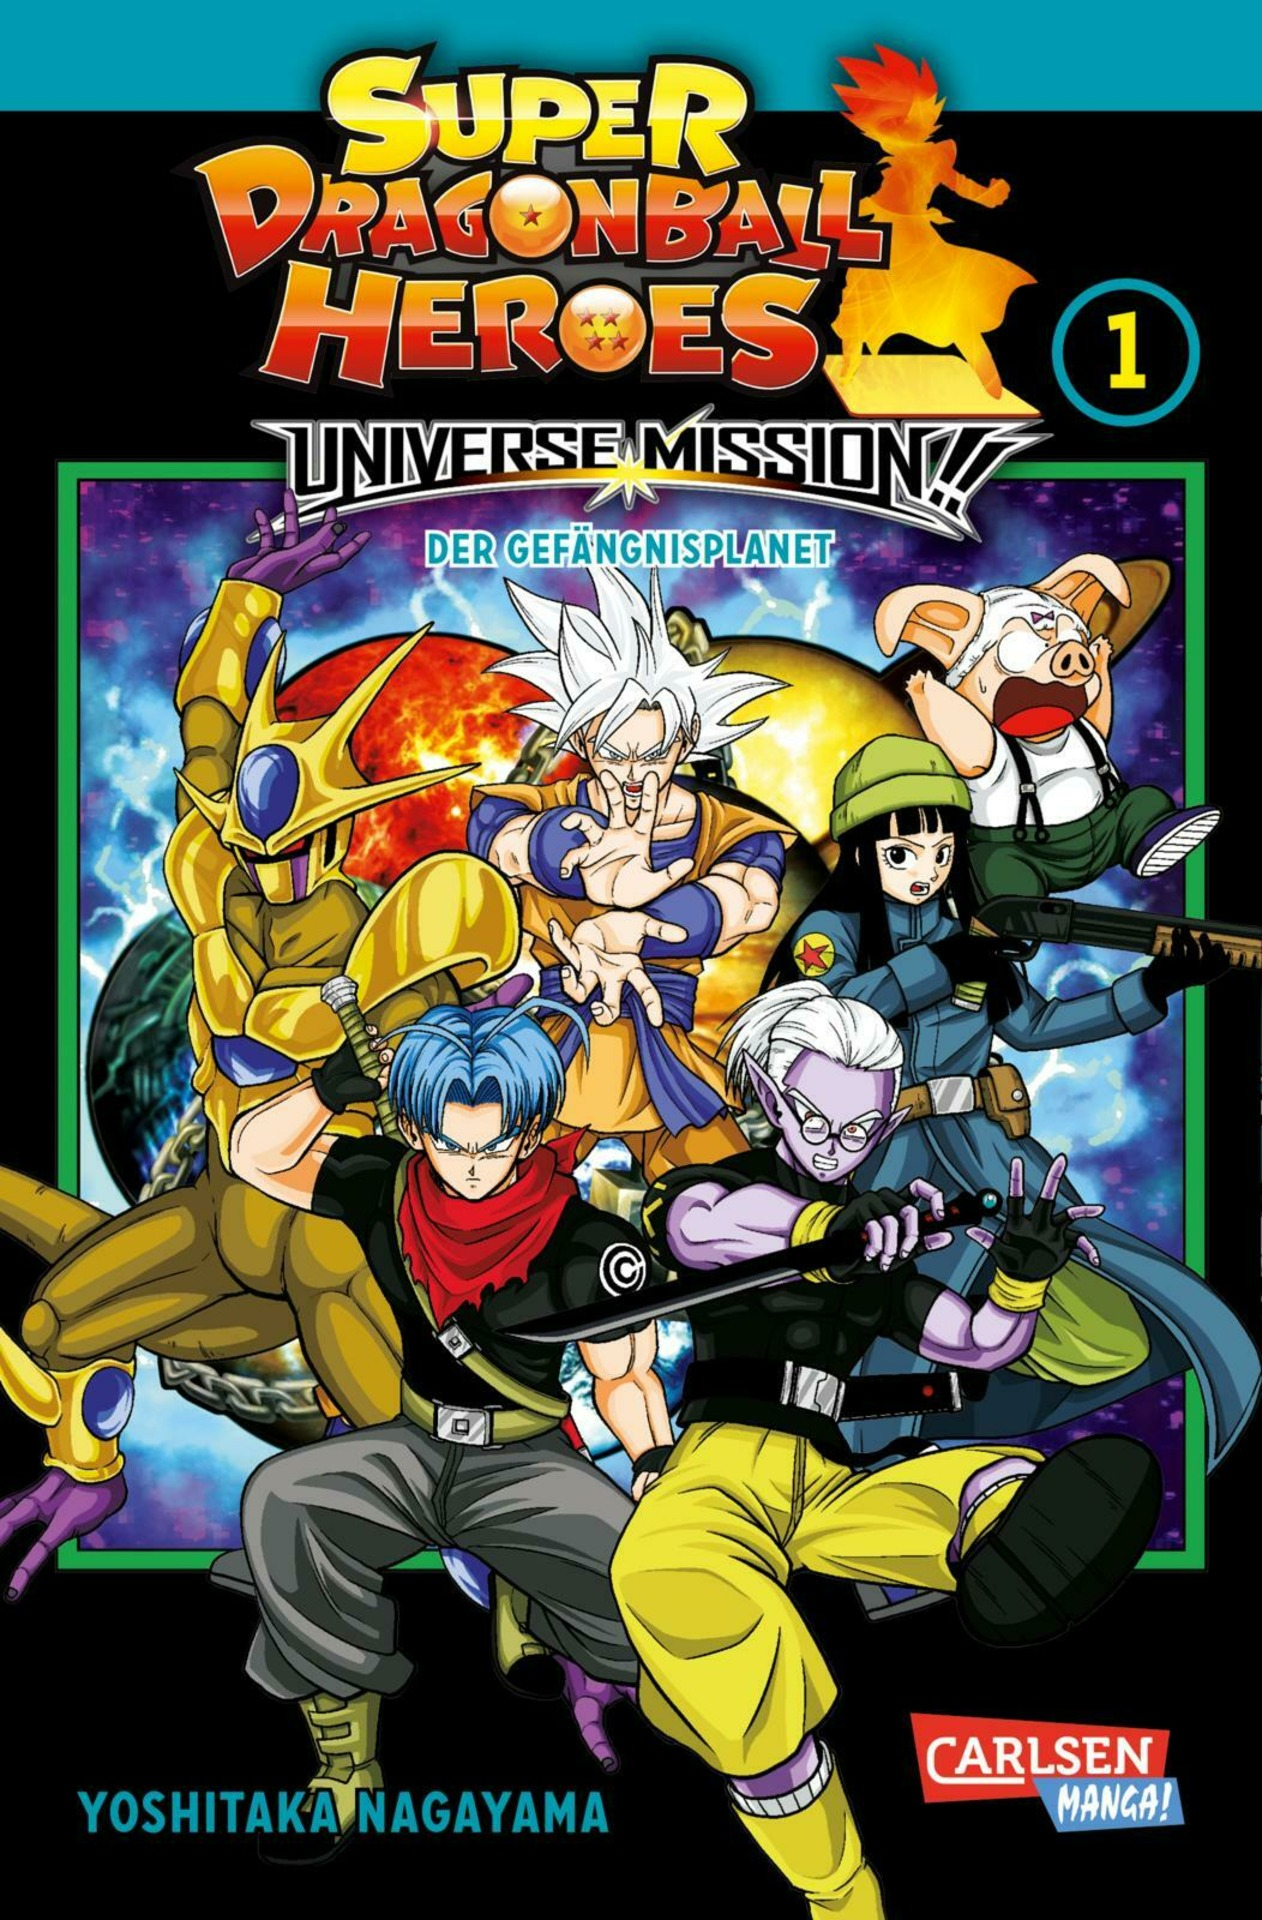 Super Dragon Ball Heroes - Universe Mission!!